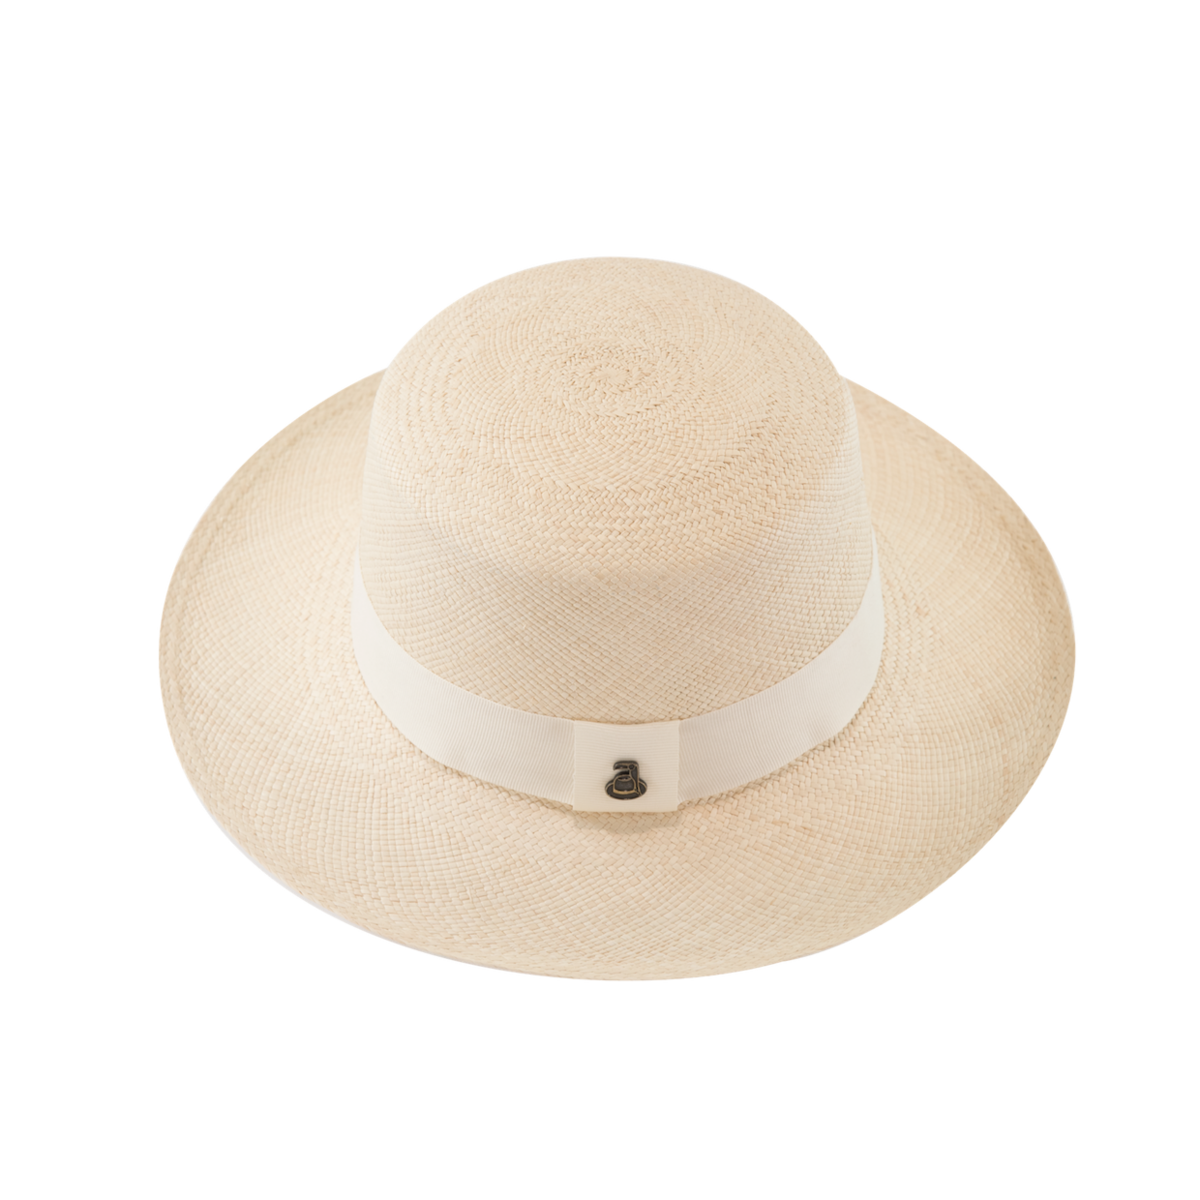 Panama Boater - White with White Band - product image